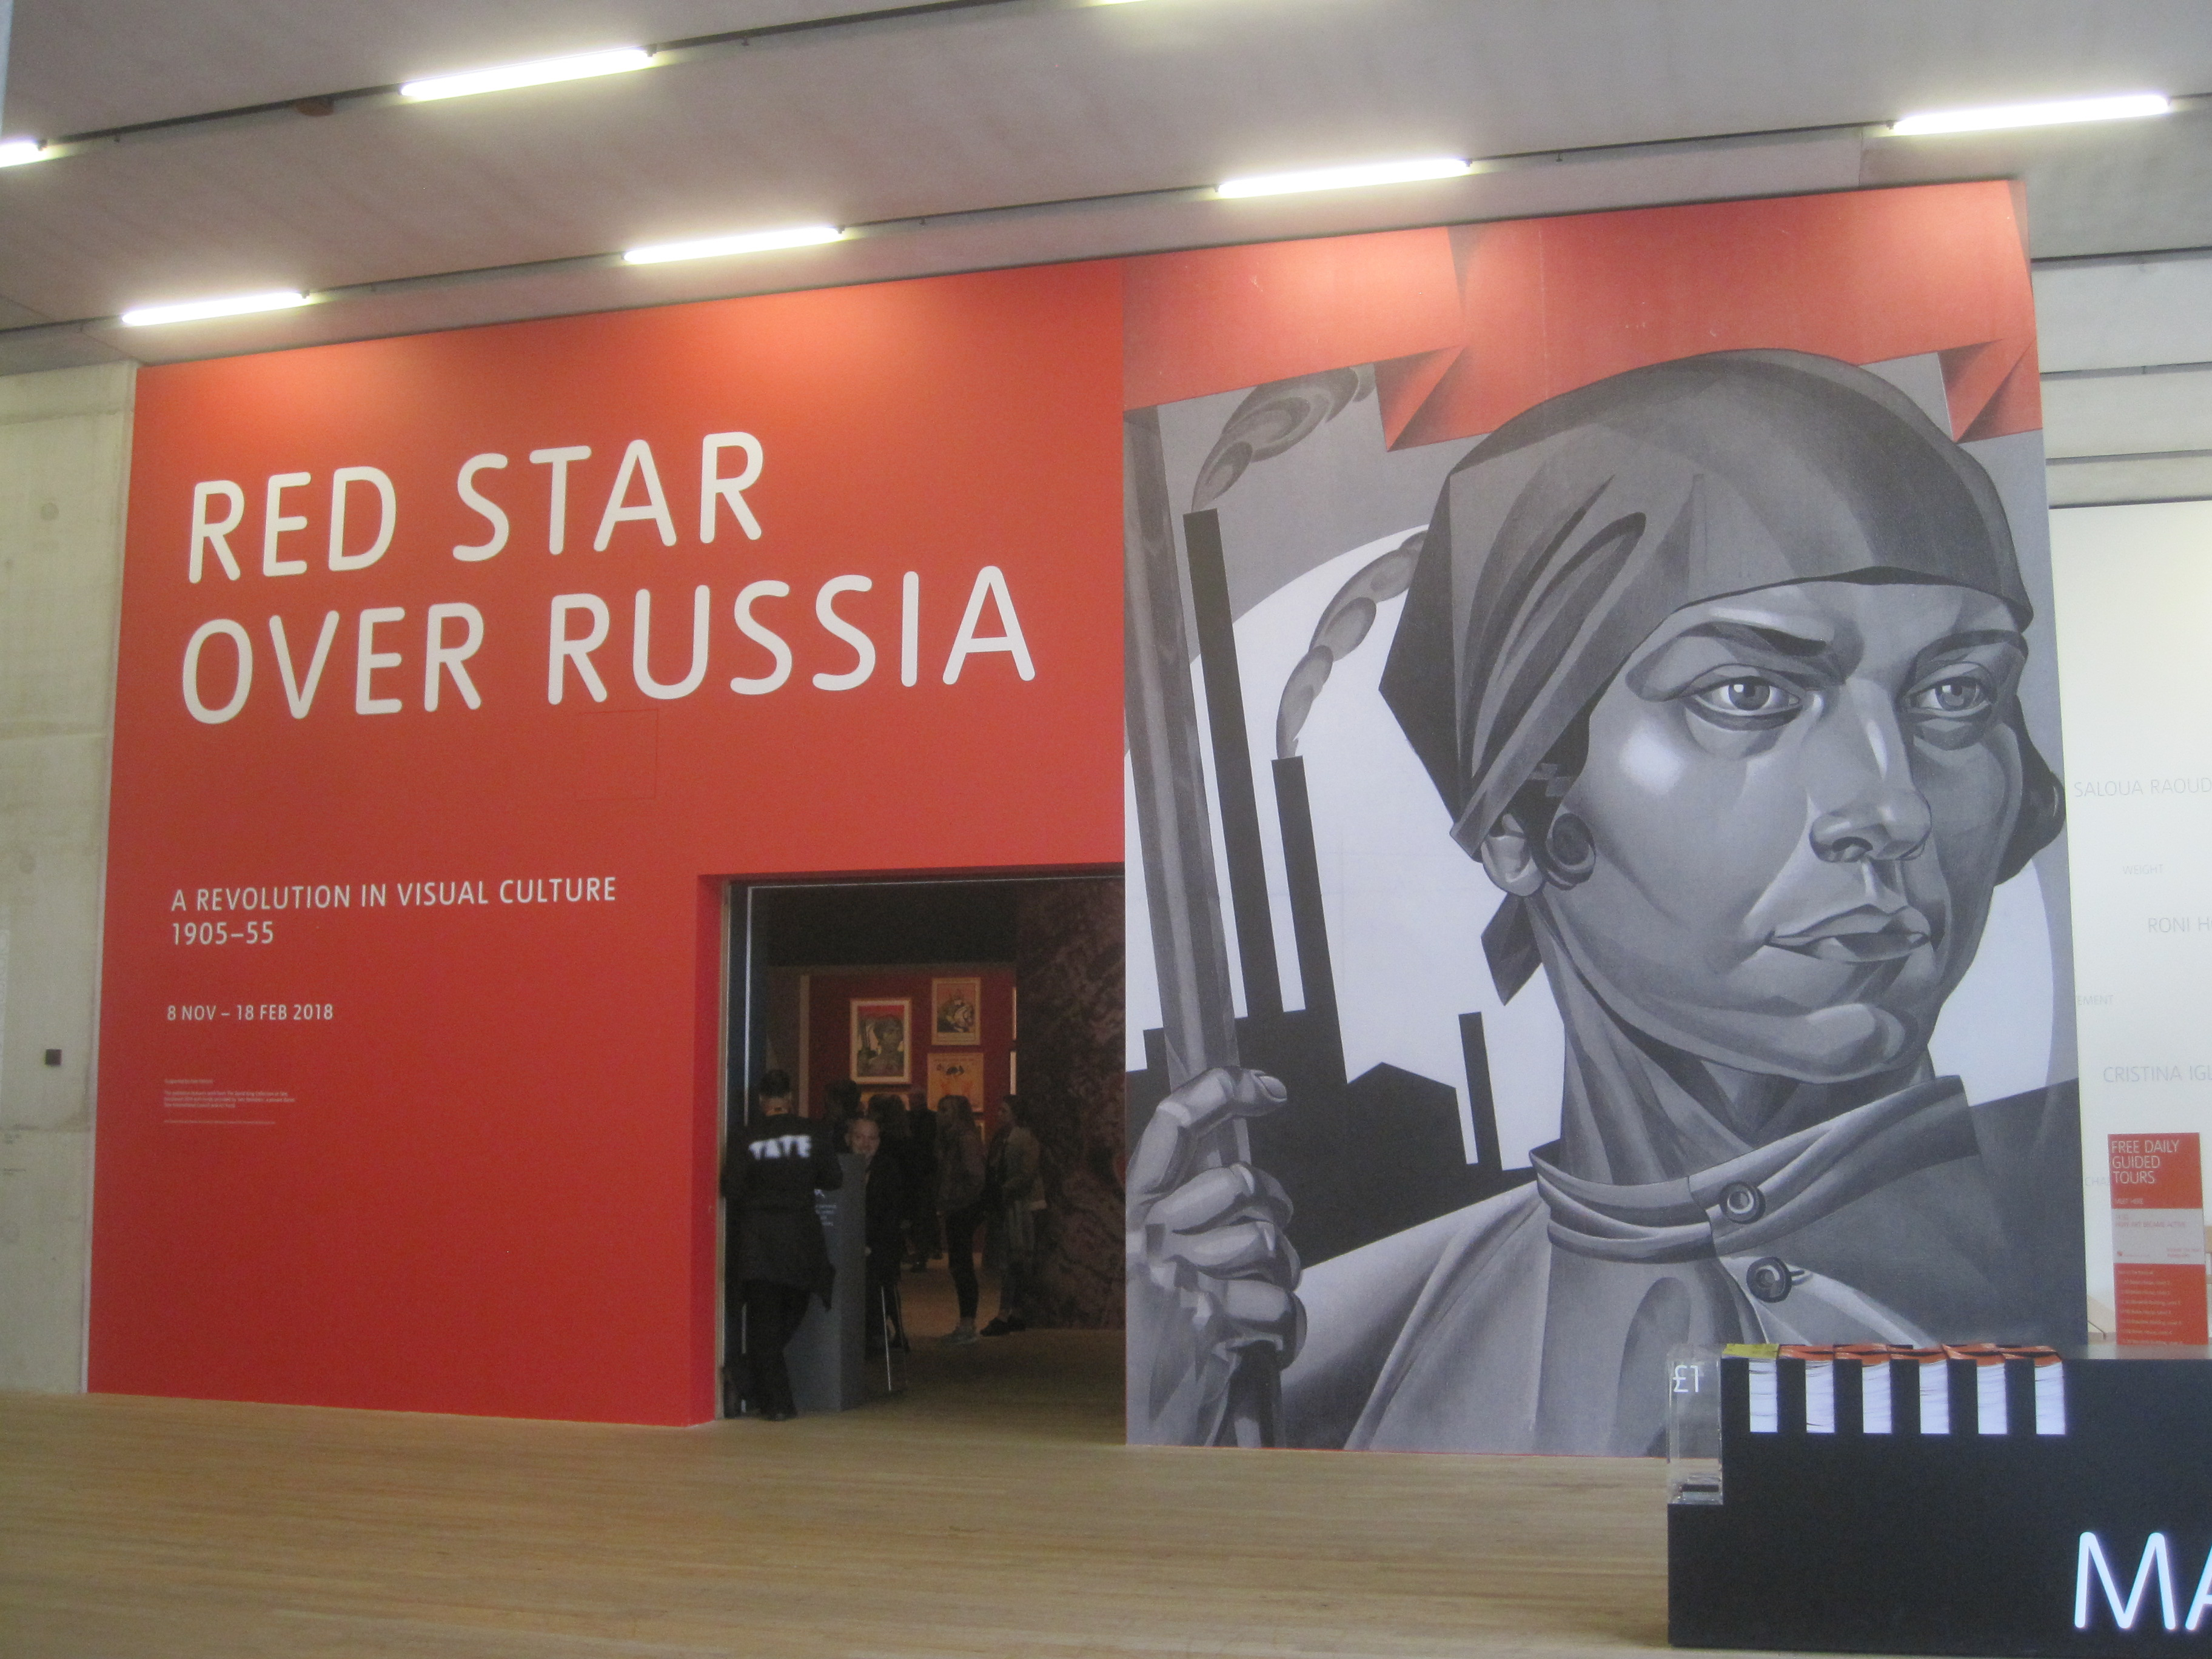 Entrance to Red Star over Russia at